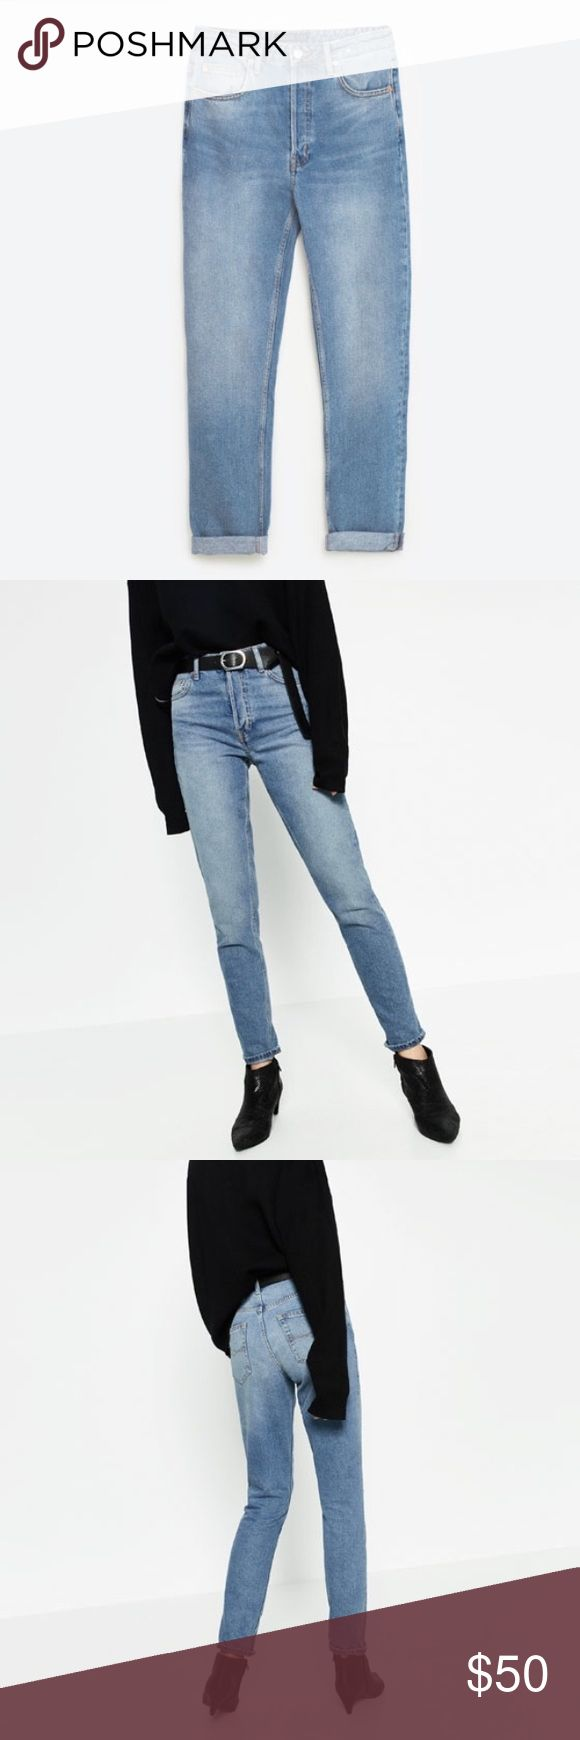 Zara high rise straight cut jeans Zara high rise jeans! Sold out online in a month! Unfortunately, they did not fit and I missed the return window as I was out of town. Zara Jeans